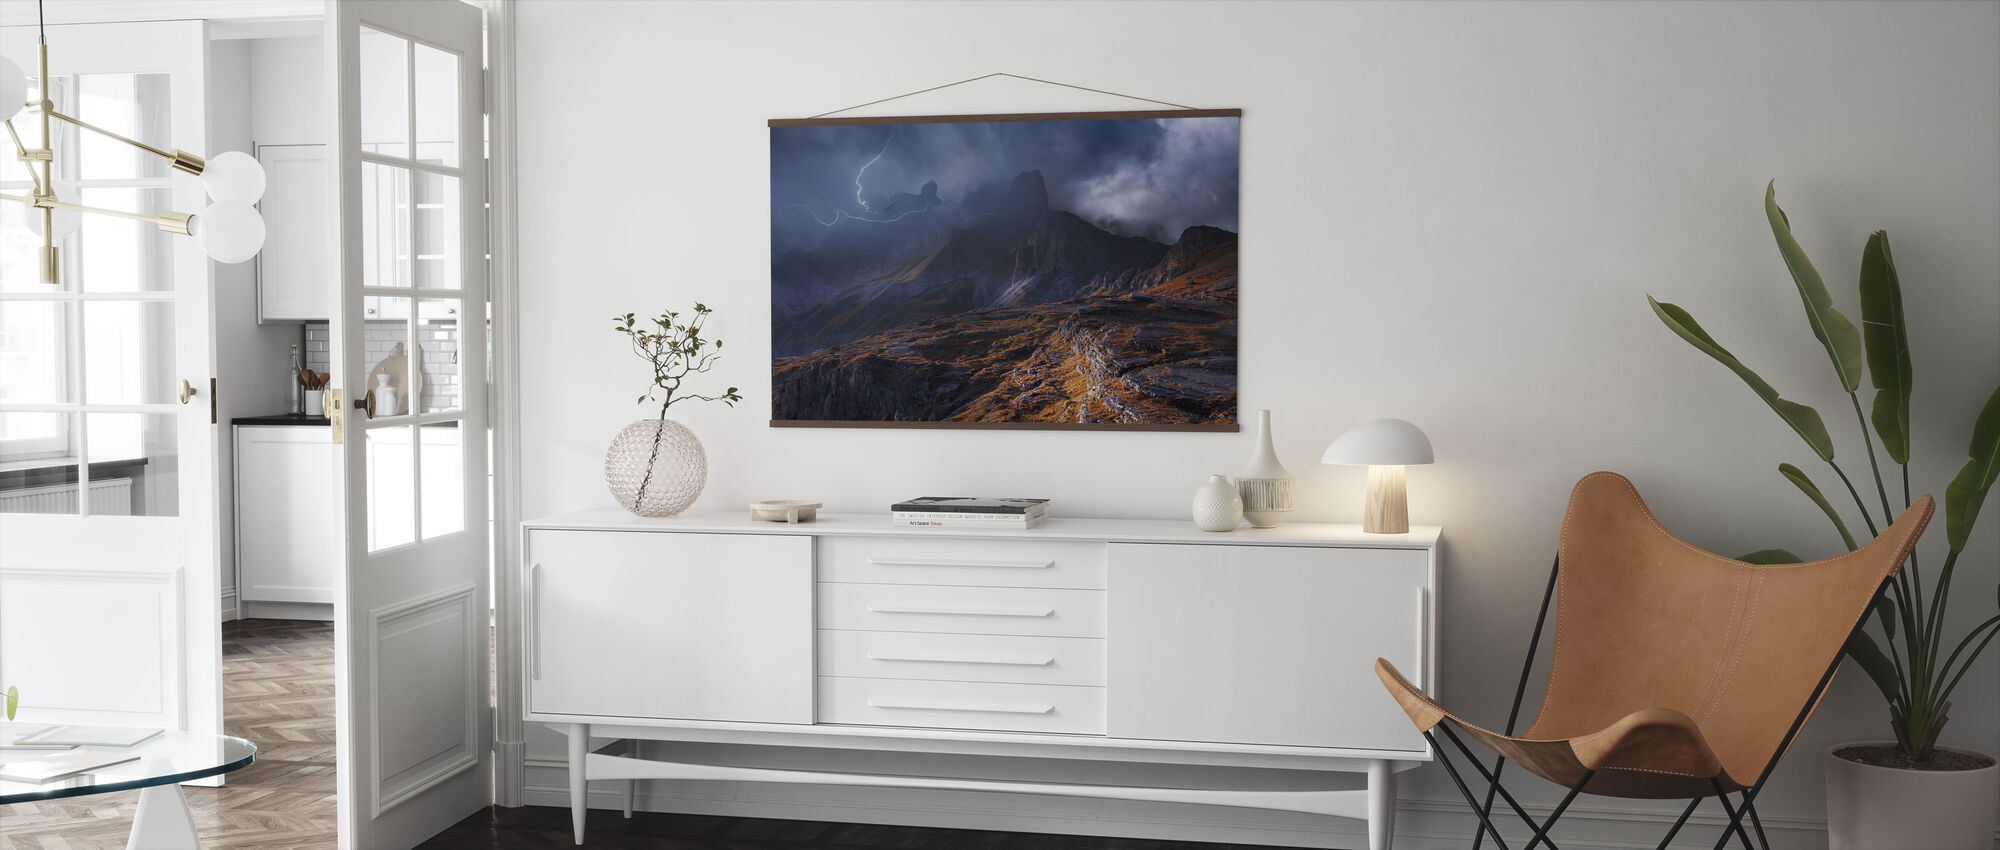 Mountain weather - Poster - Living Room